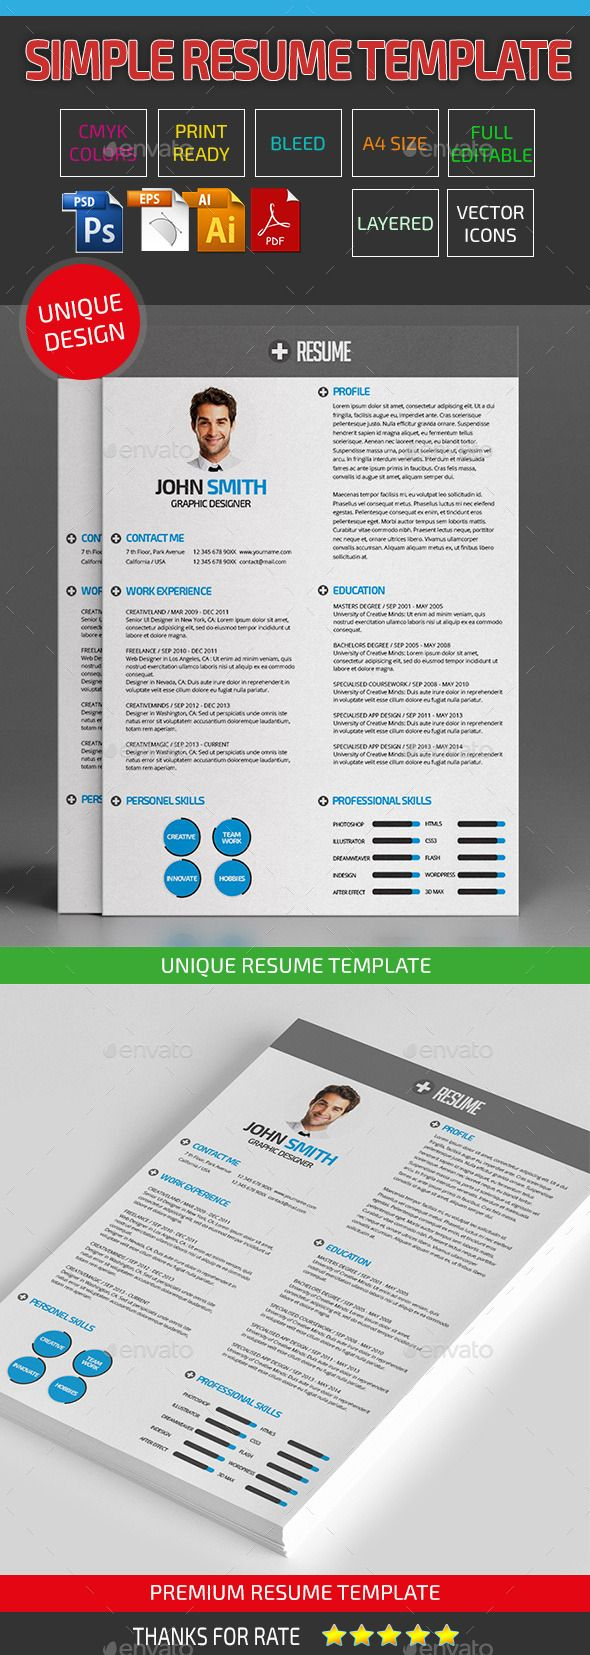 Best Cv Inspiration  Board Images On   Resume